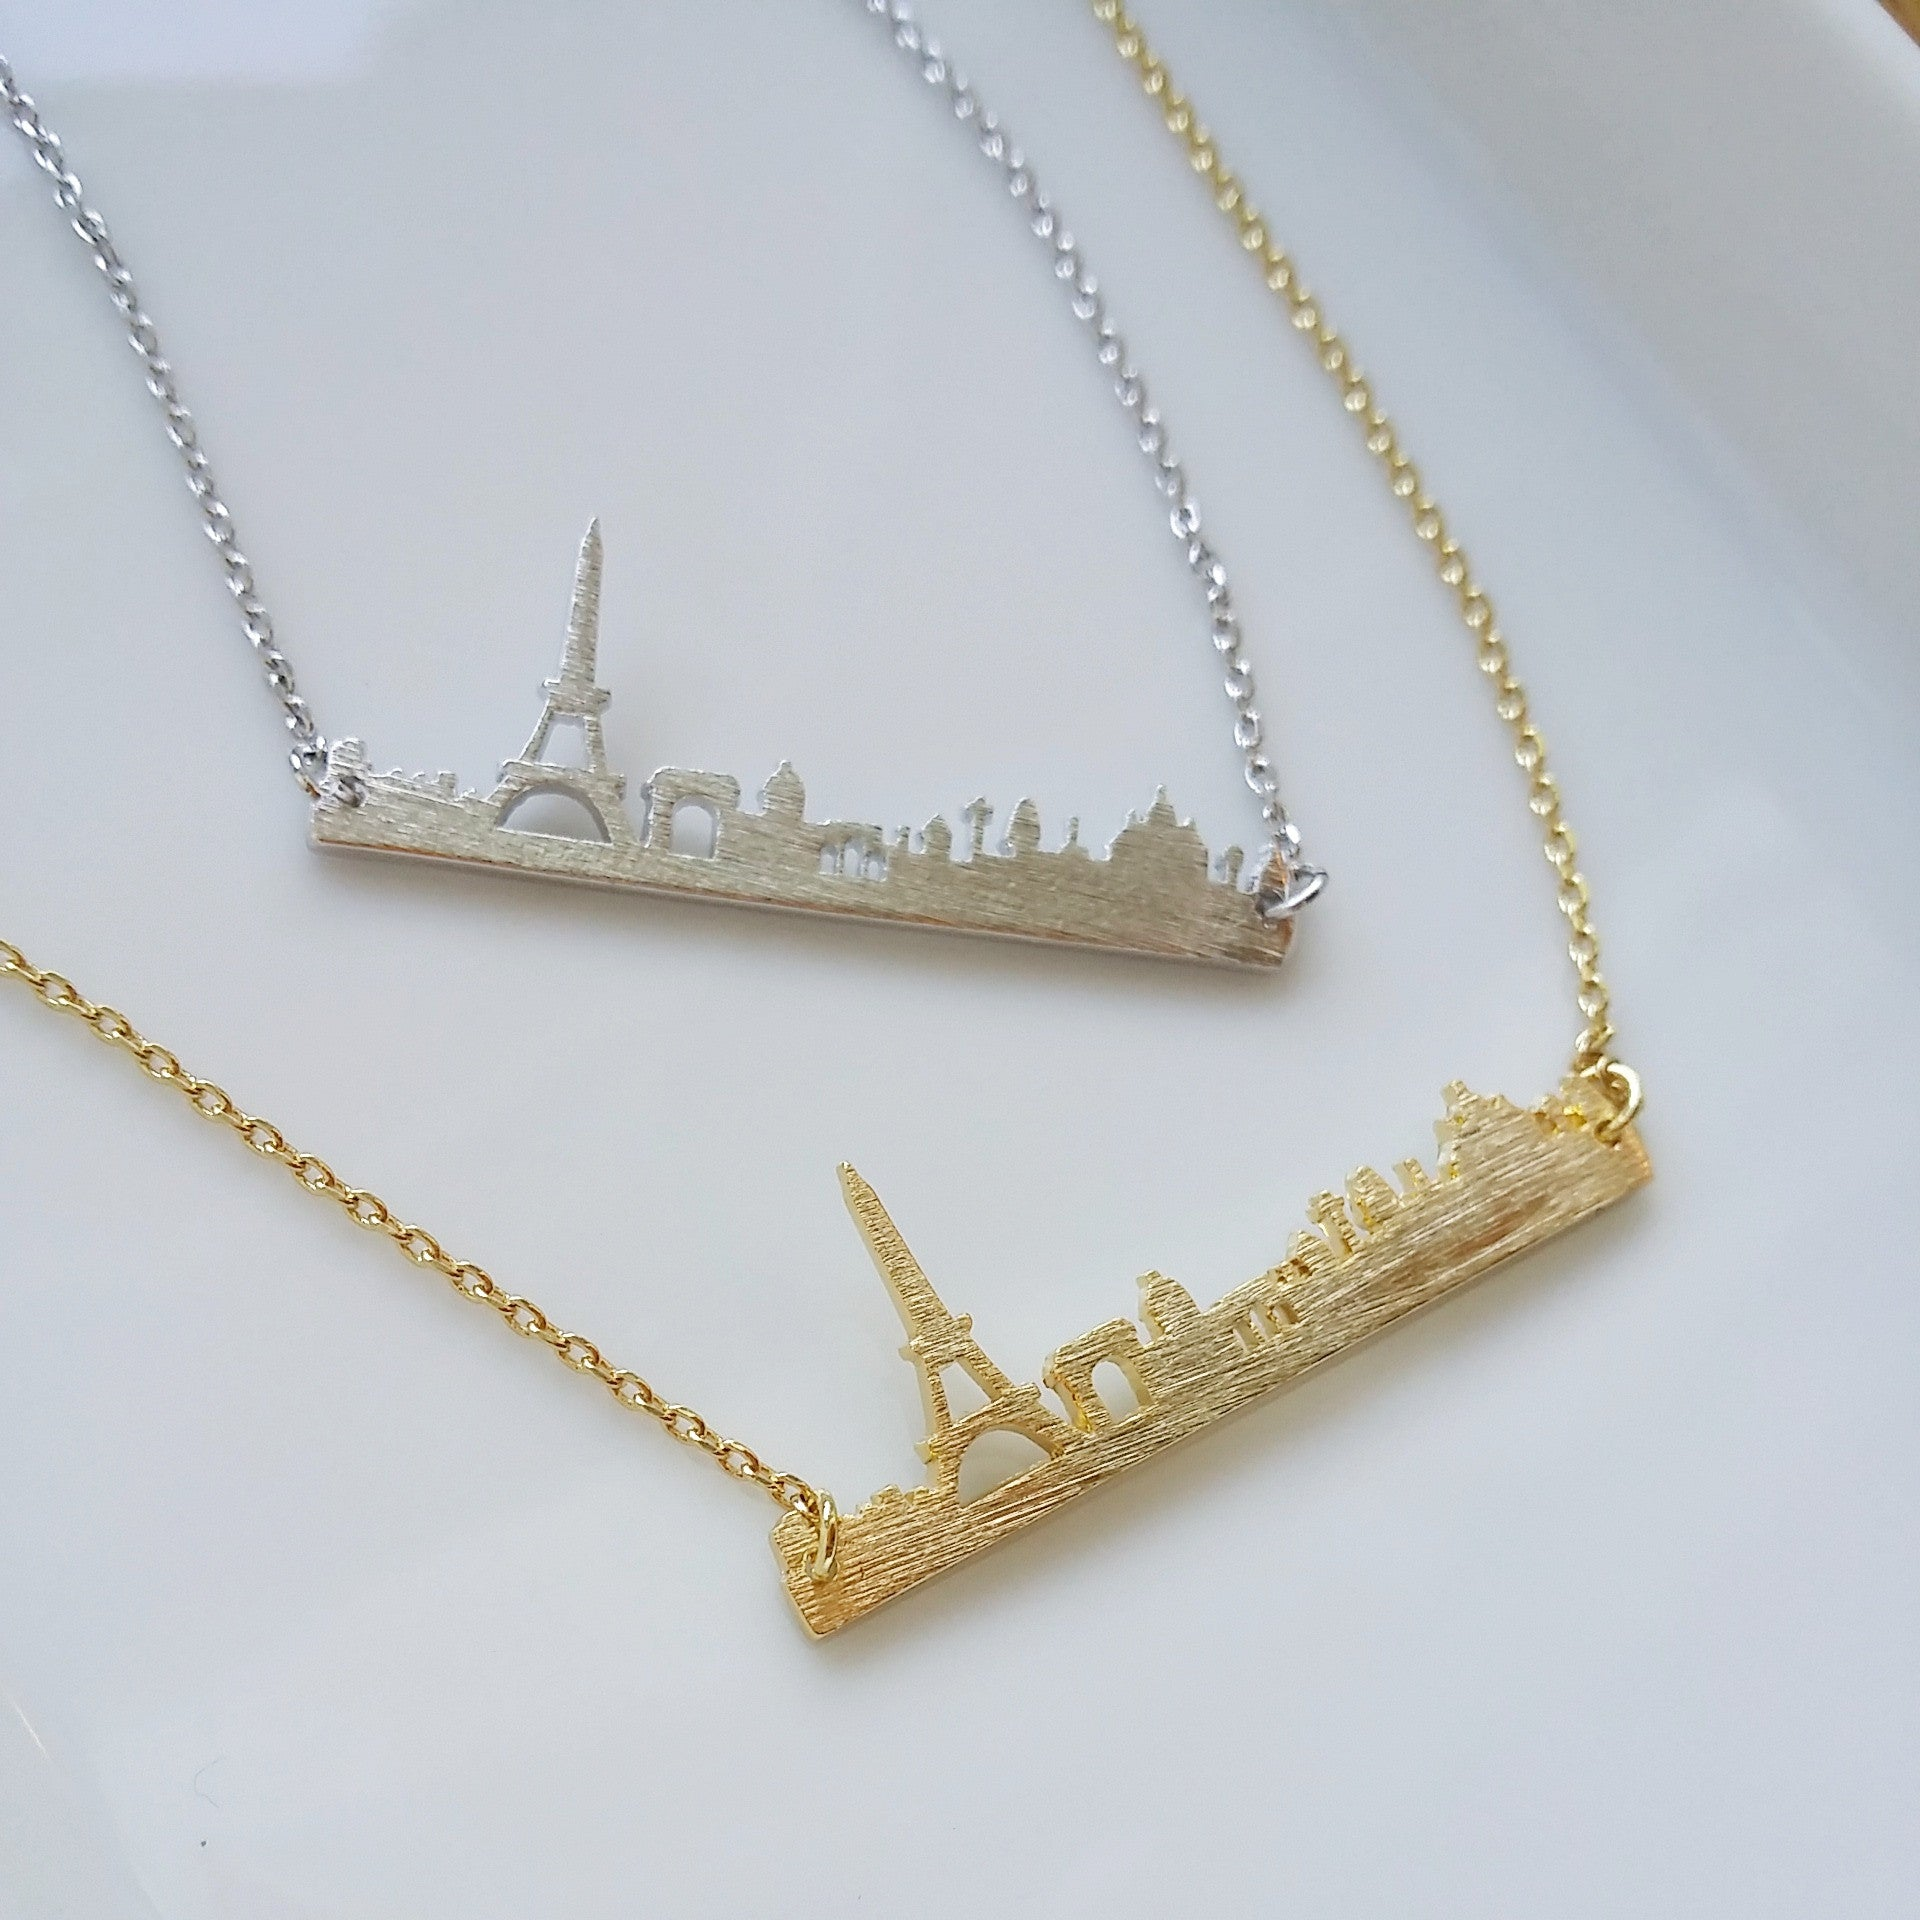 Paris Skyline Necklace